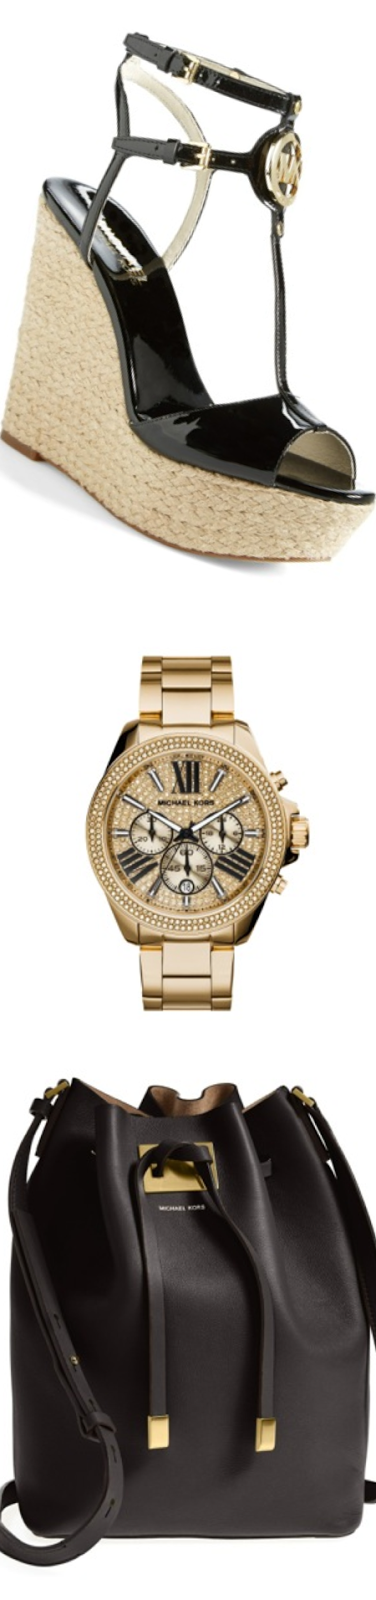 Michael Kors Wren Pave Dial Chronograph Watch